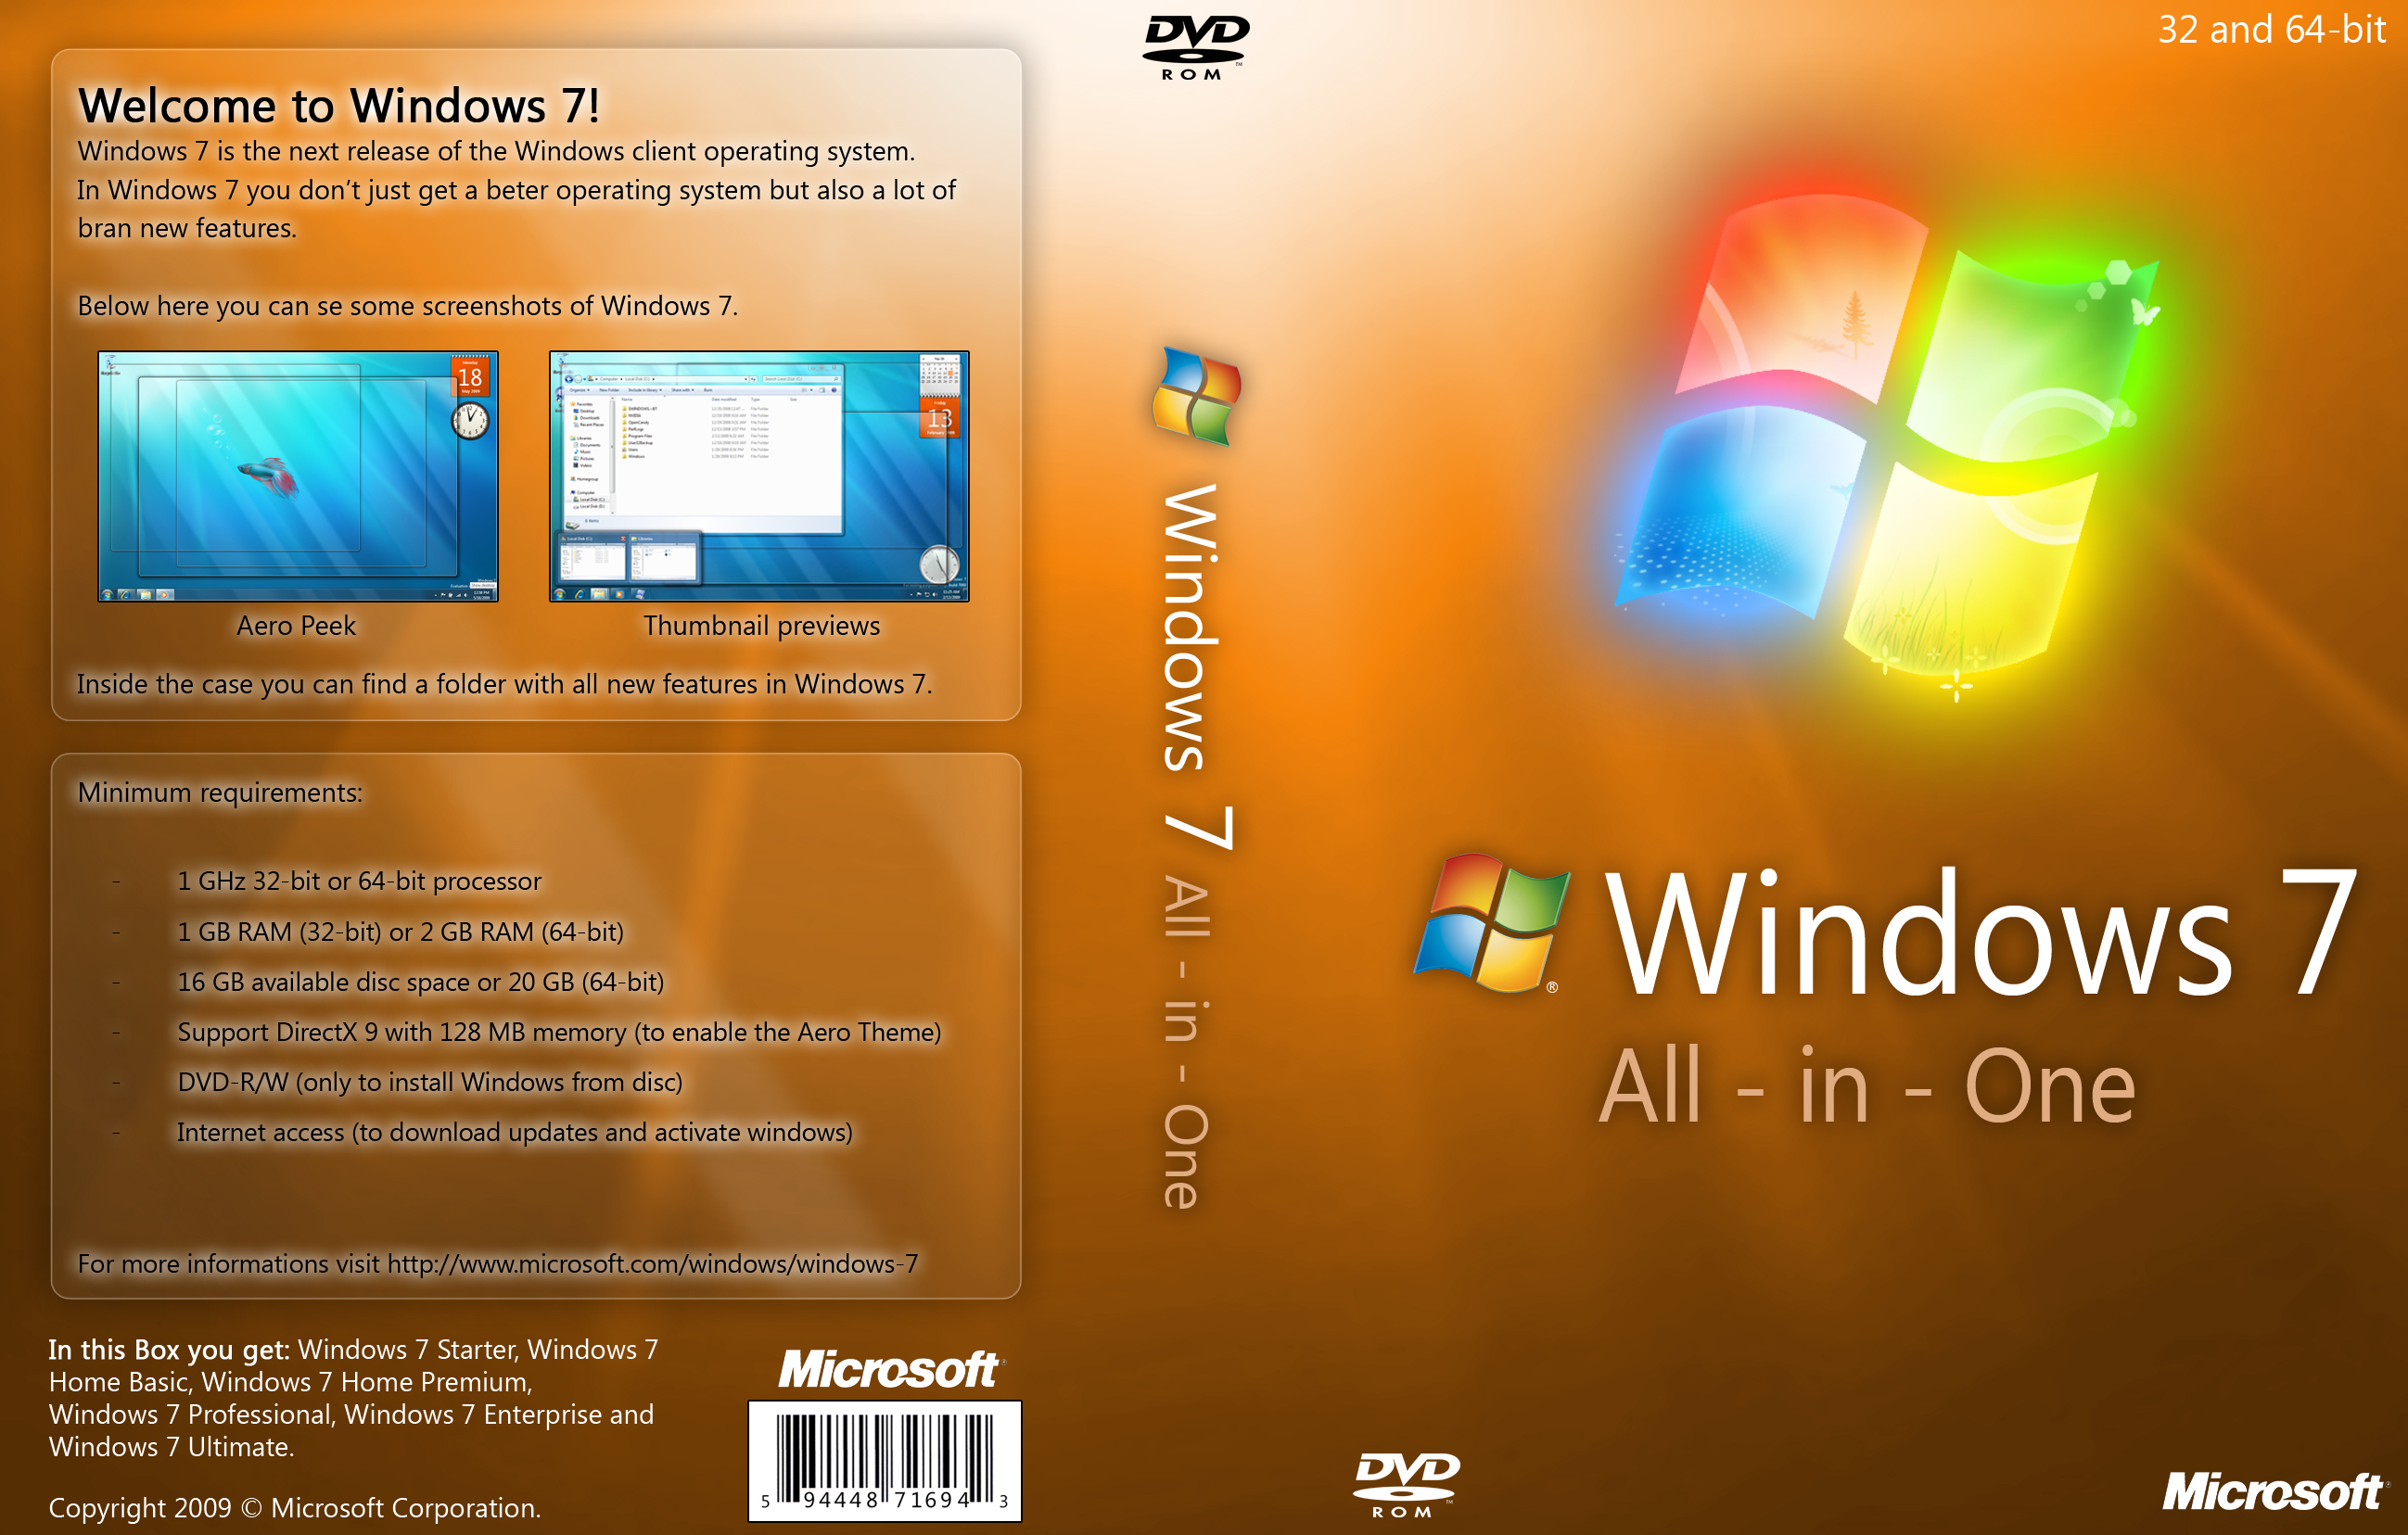 Windows_7_All_in_One_DVD_